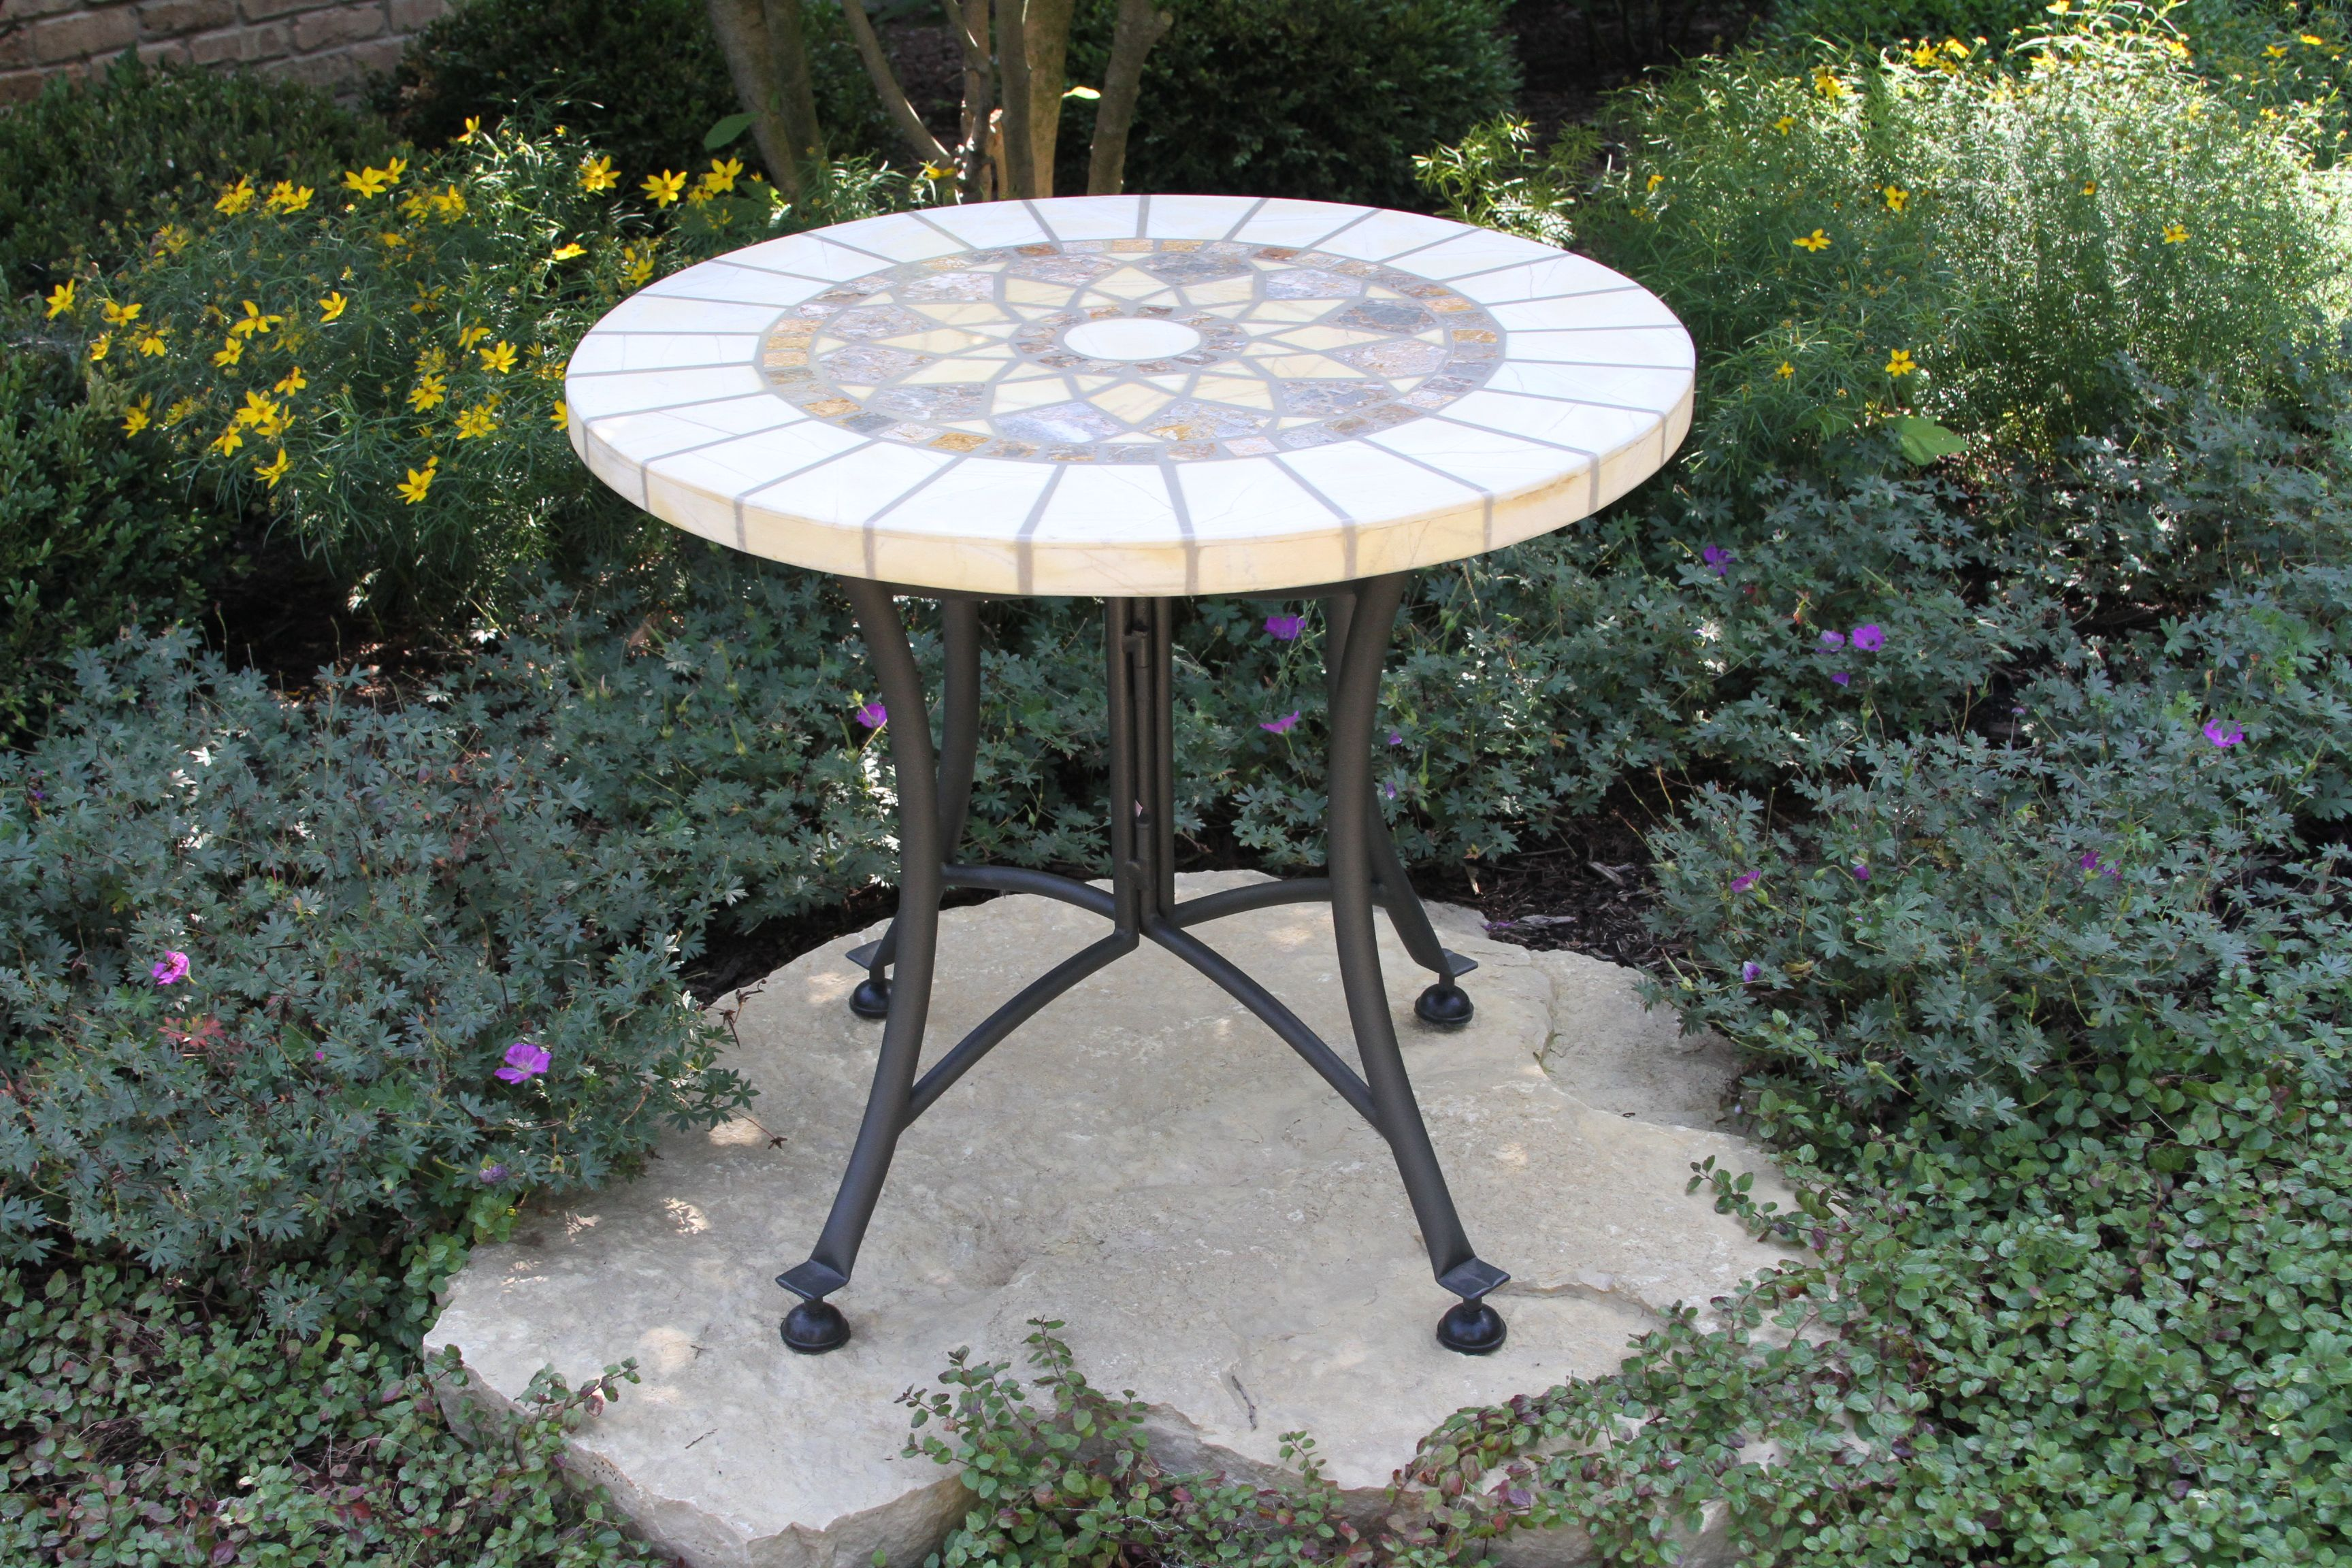 stone marble mosaic accent table decorative outdoor clear acrylic end garden storage unique rustic tables chandelier black mirror contemporary hallway furniture resin narrow sofas